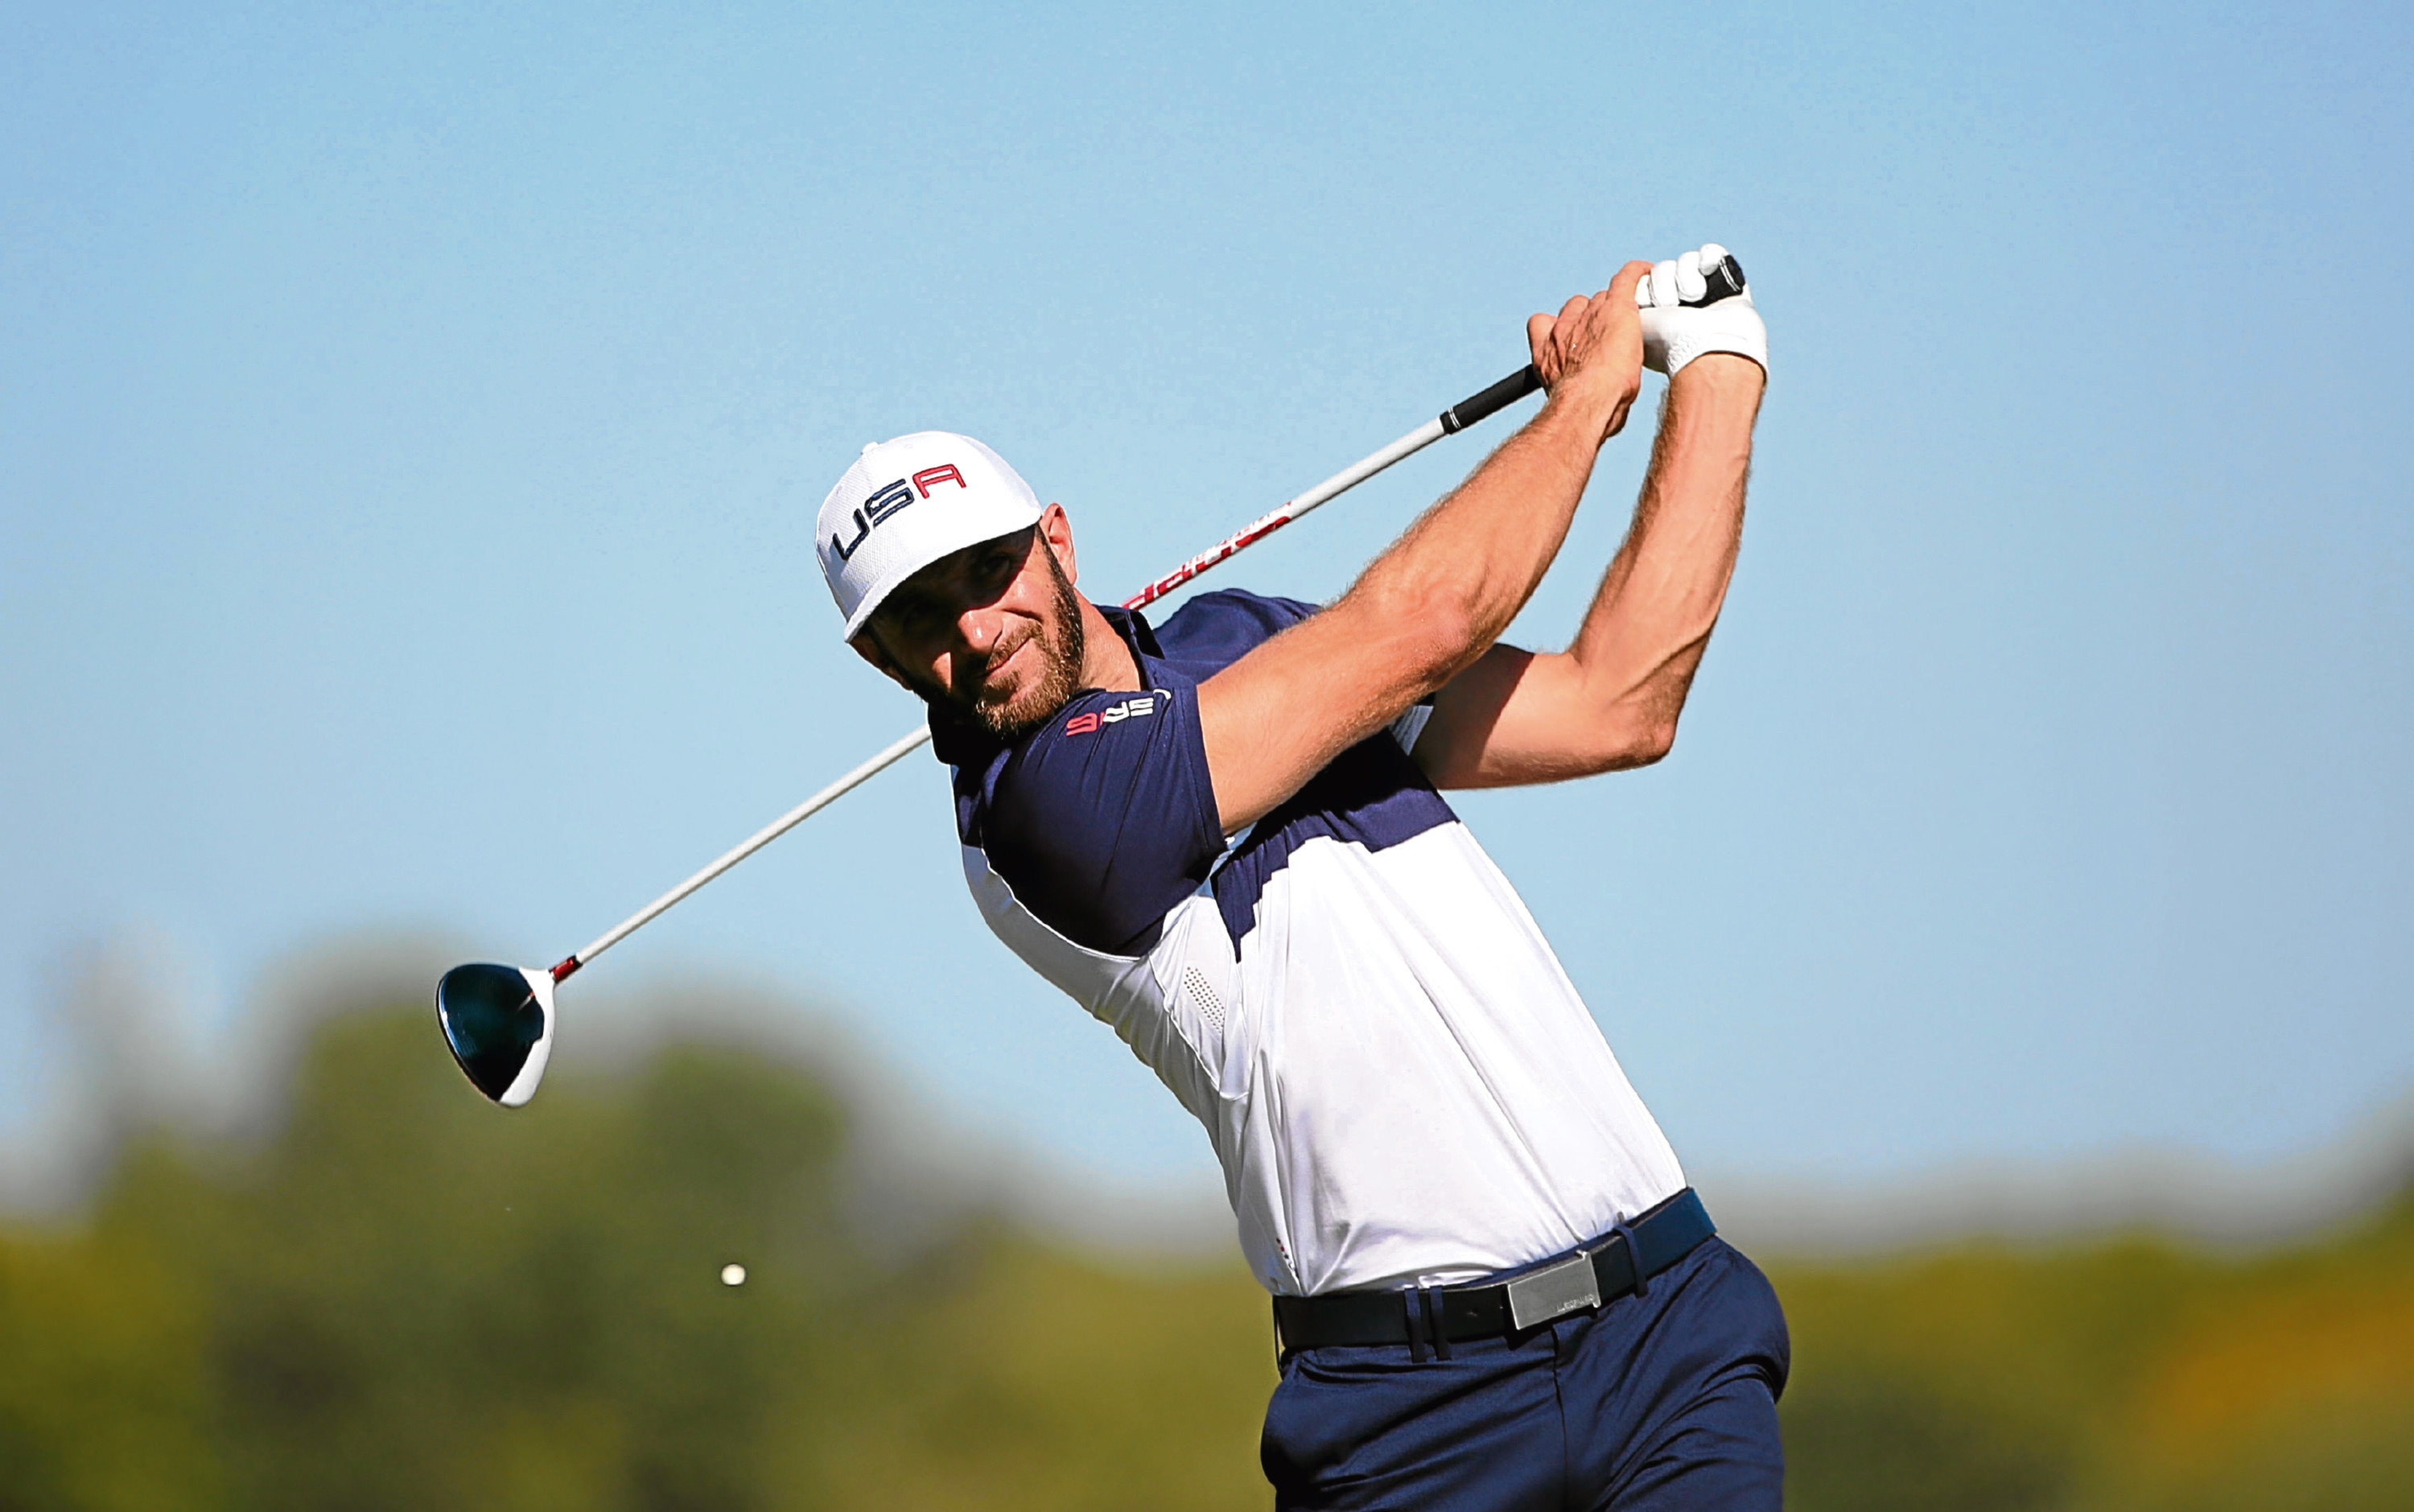 World No 1 Dustin Johnson is one of golf's longest hitters.